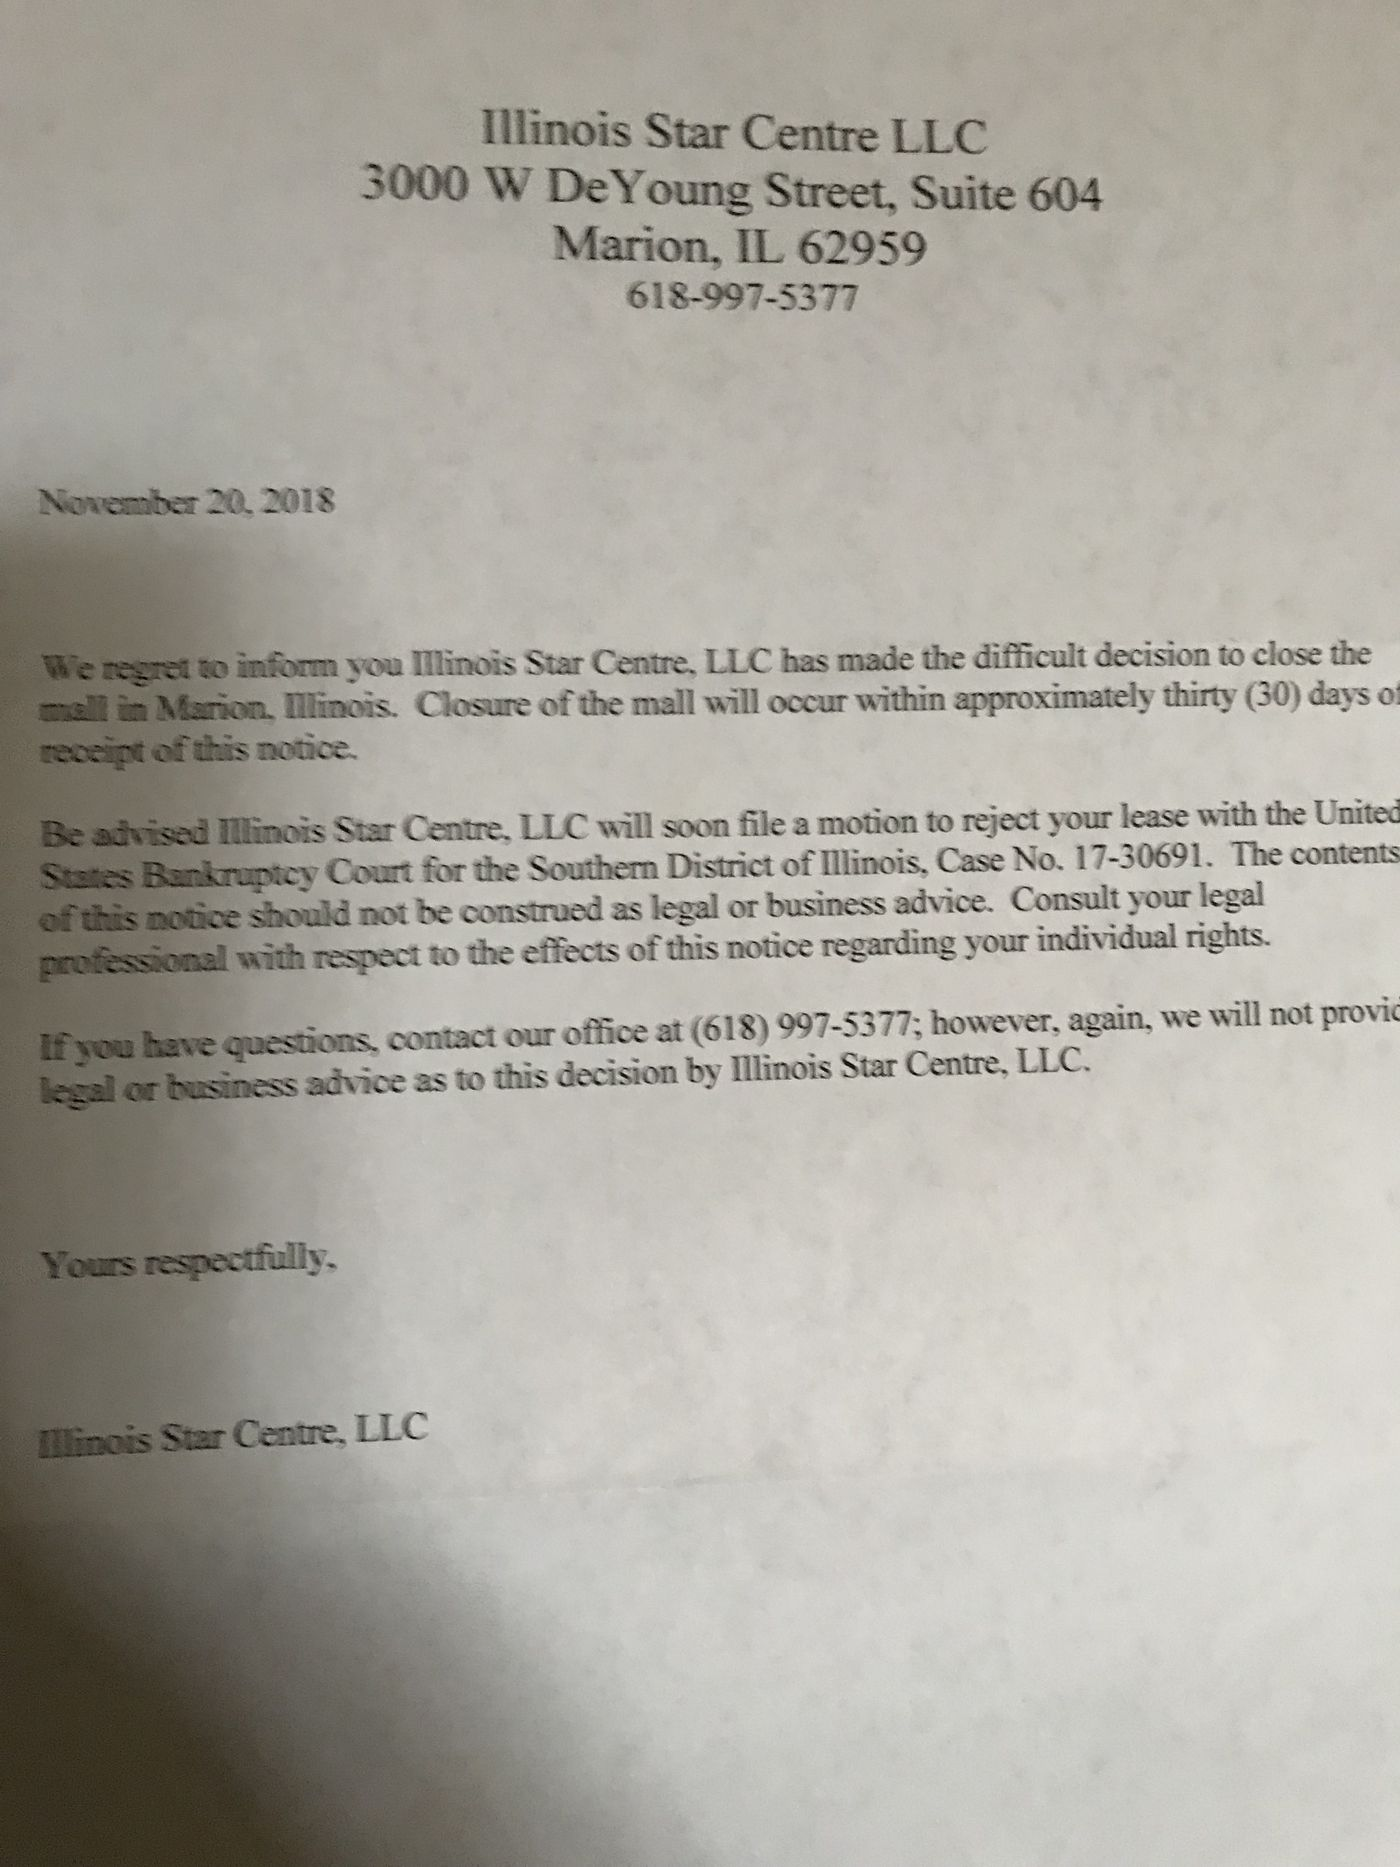 Motion Granted To Reject Unexpired Leases At Marion Il Mall